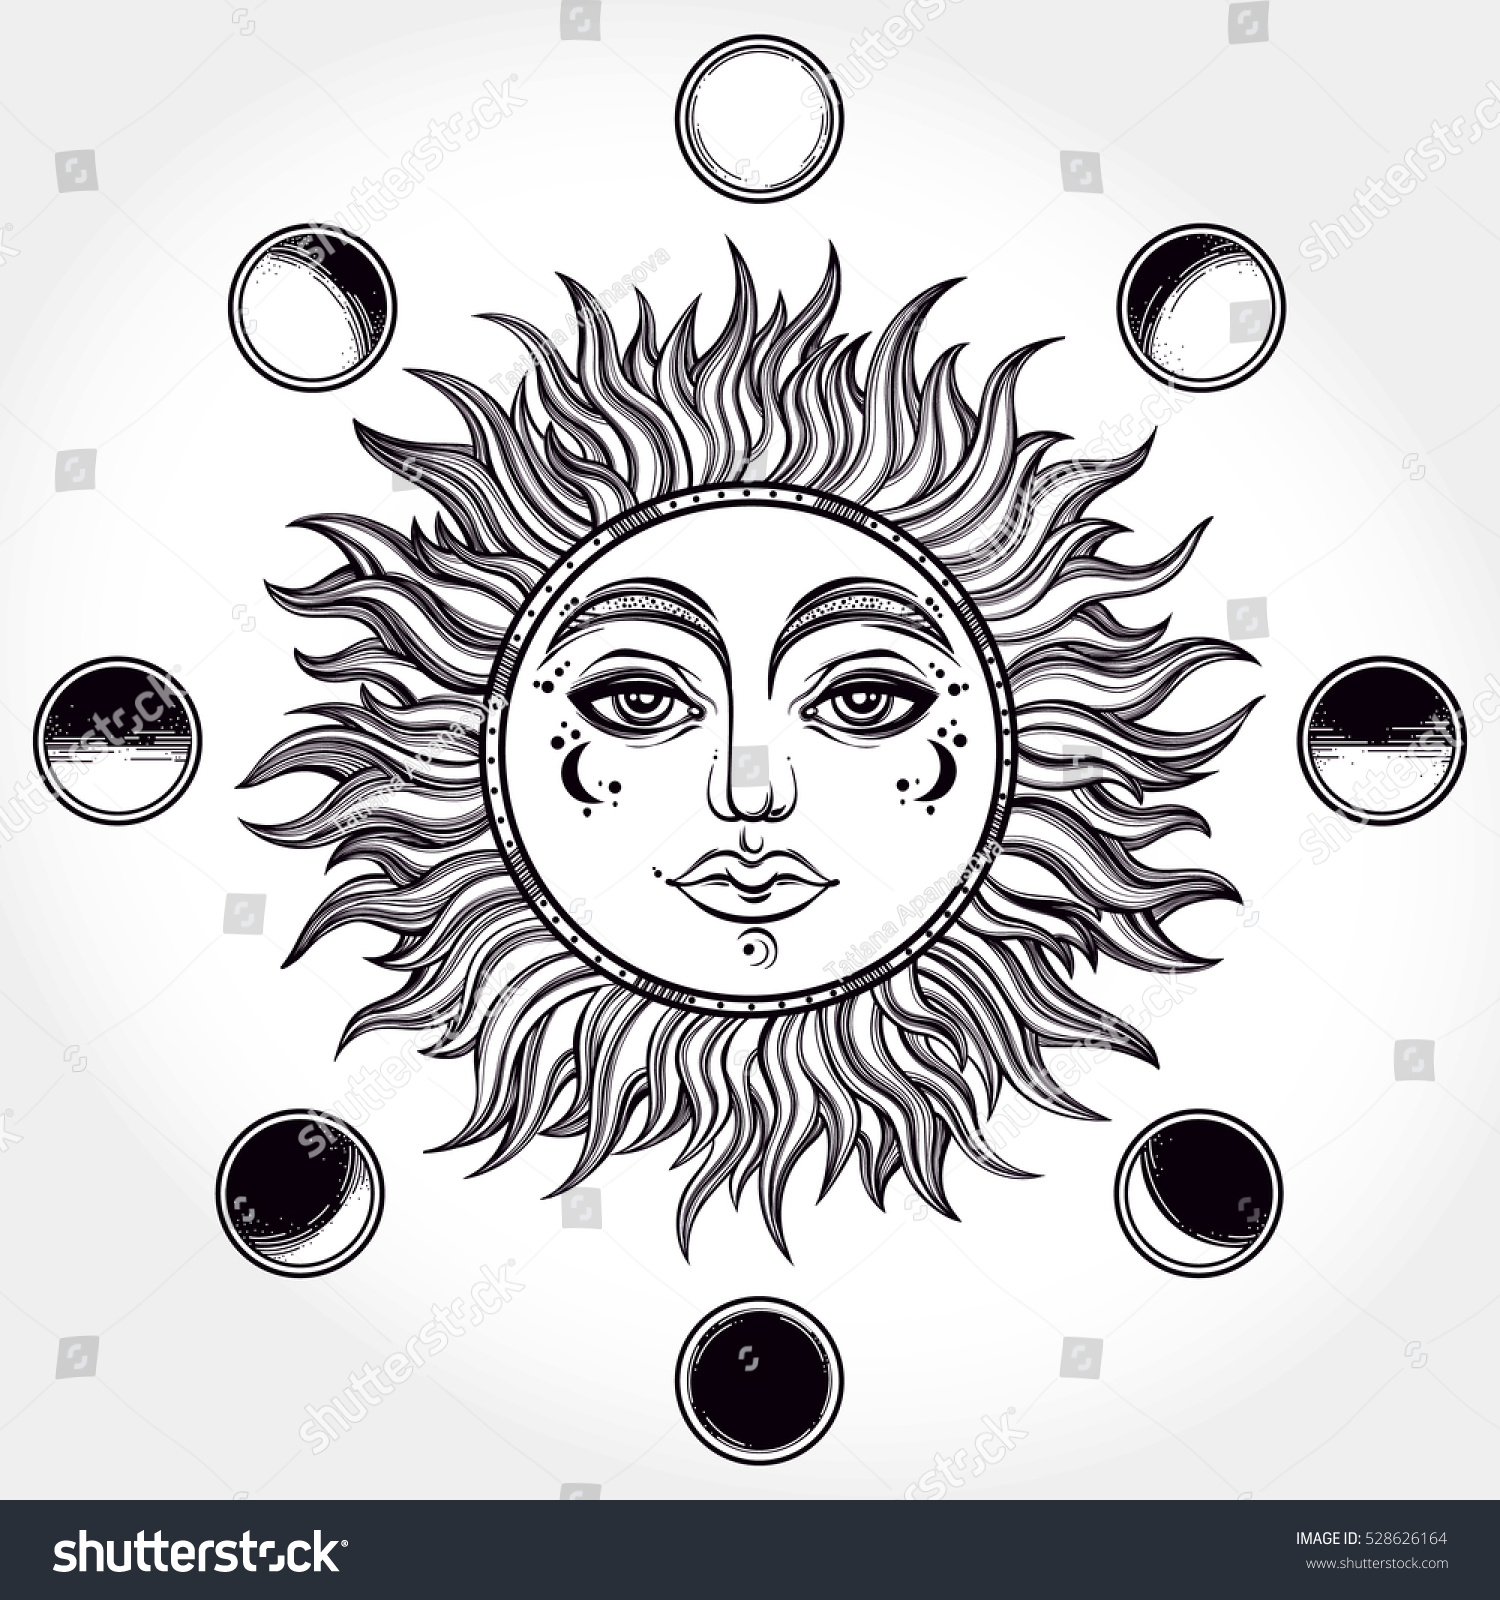 royalty vintage elegant hand draw work of sun  vintage elegant hand draw work of sun moon phases sacred geometry esoteric philosophies tattoo art vector illustration for coloring book